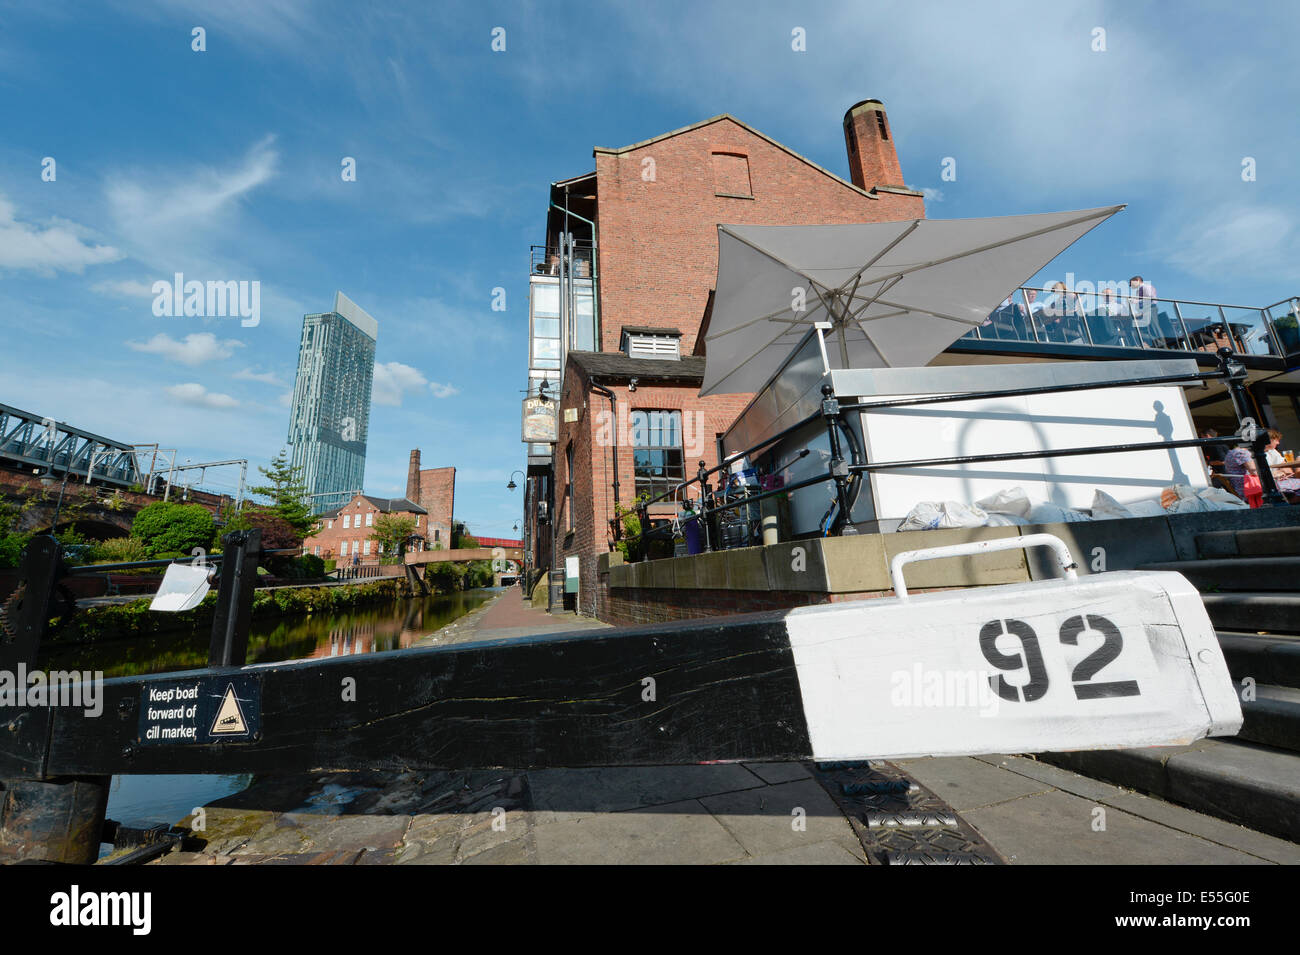 The Castlefield historic inner city canal area including Dukes 92 and lock and Beetham Tower (background) in Manchester - Stock Image